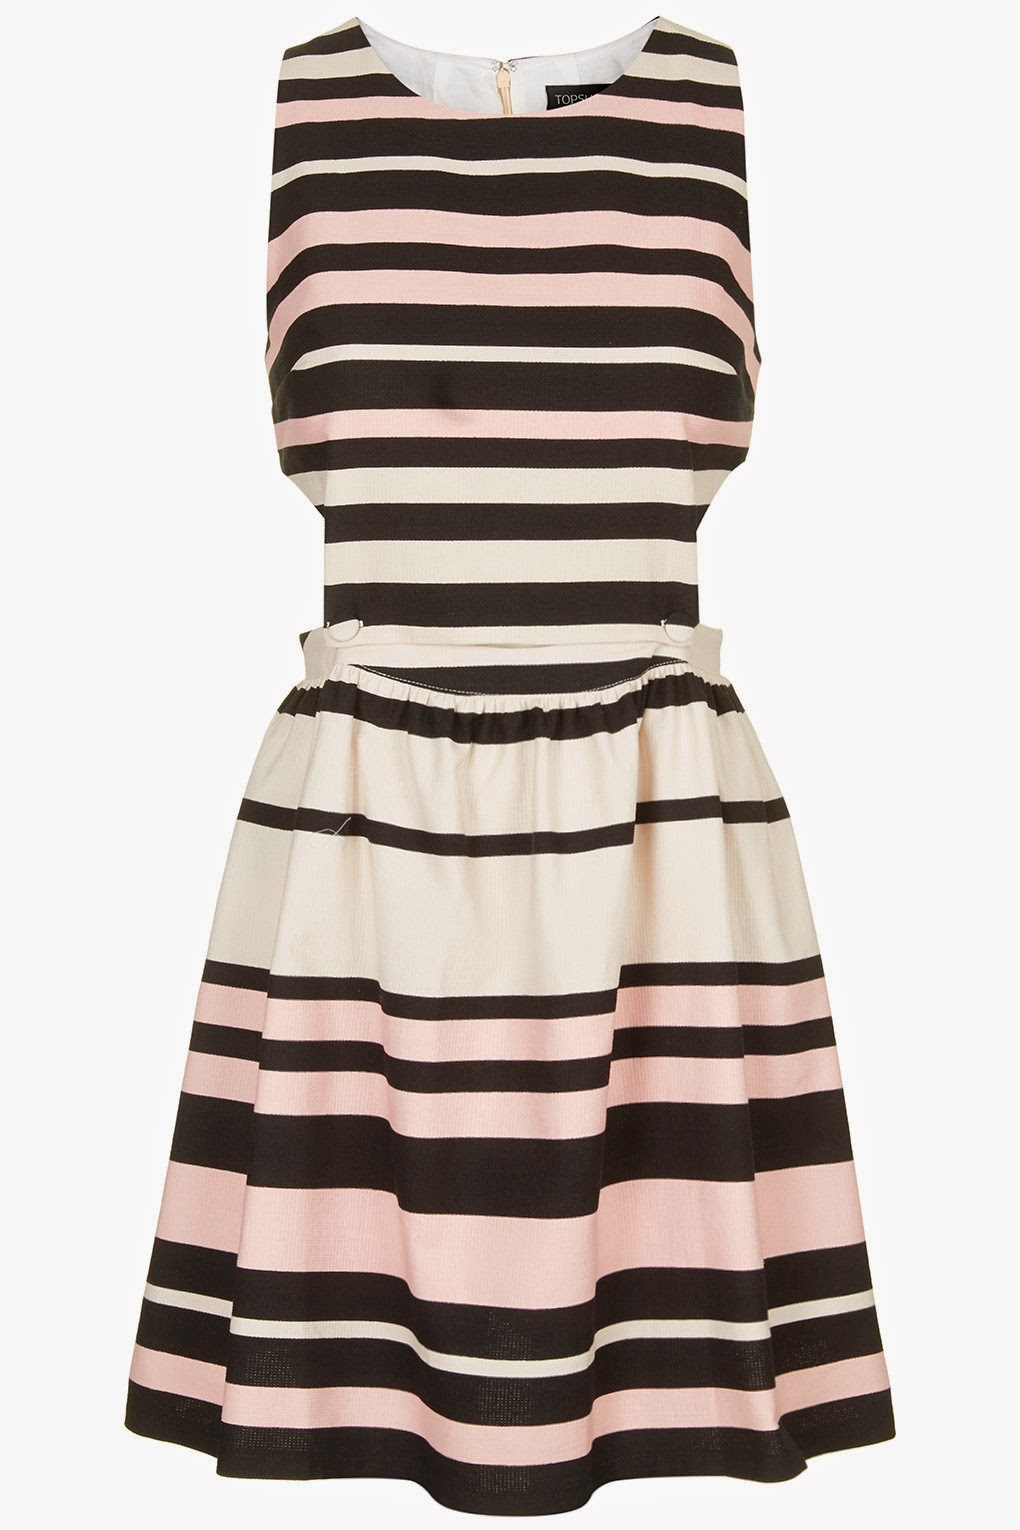 topshop black white stripe dress,